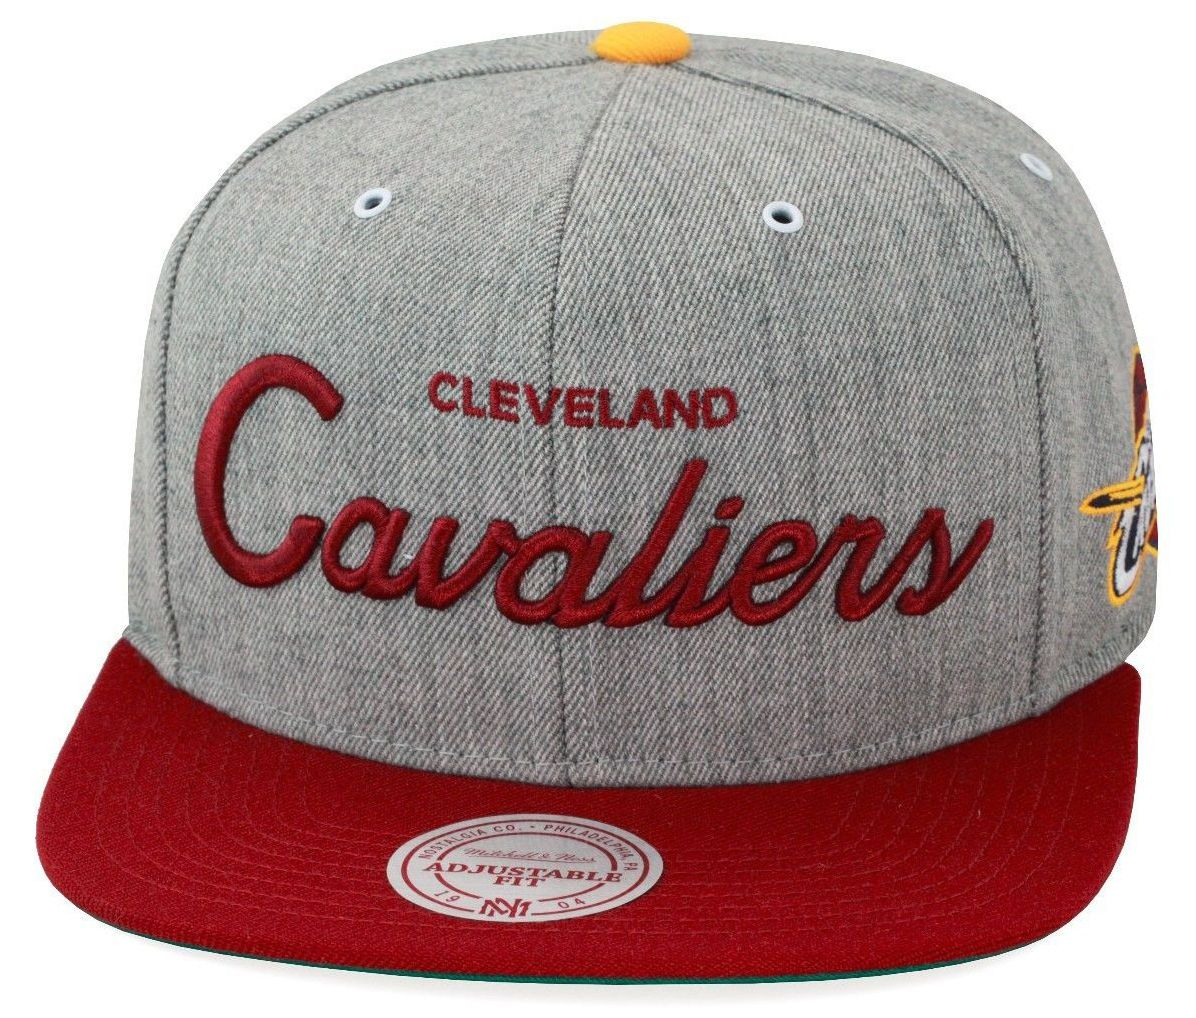 6ae34f6288d Mitchell   Ness Cleveland Cavaliers Cavs Snapback Hat Heather  Grey Maroon Script